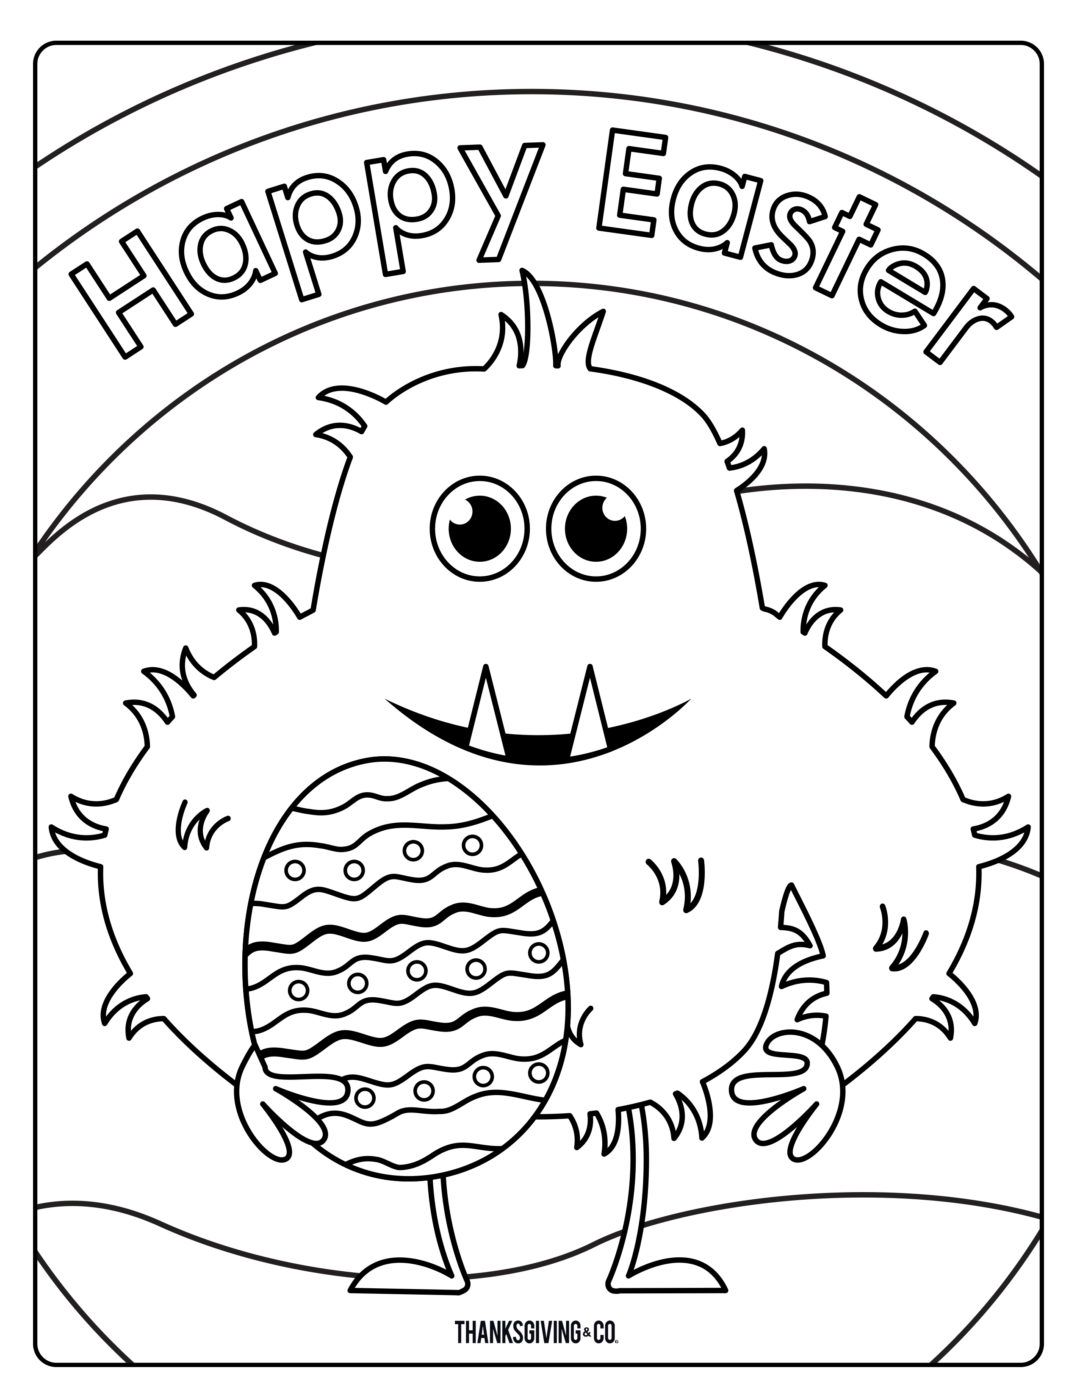 8 Free Printable Easter Coloring Pages Your Kids Will Love From Makeitgrateful Com Easter Colo Monster Coloring Pages Easter Coloring Book Easter Colouring